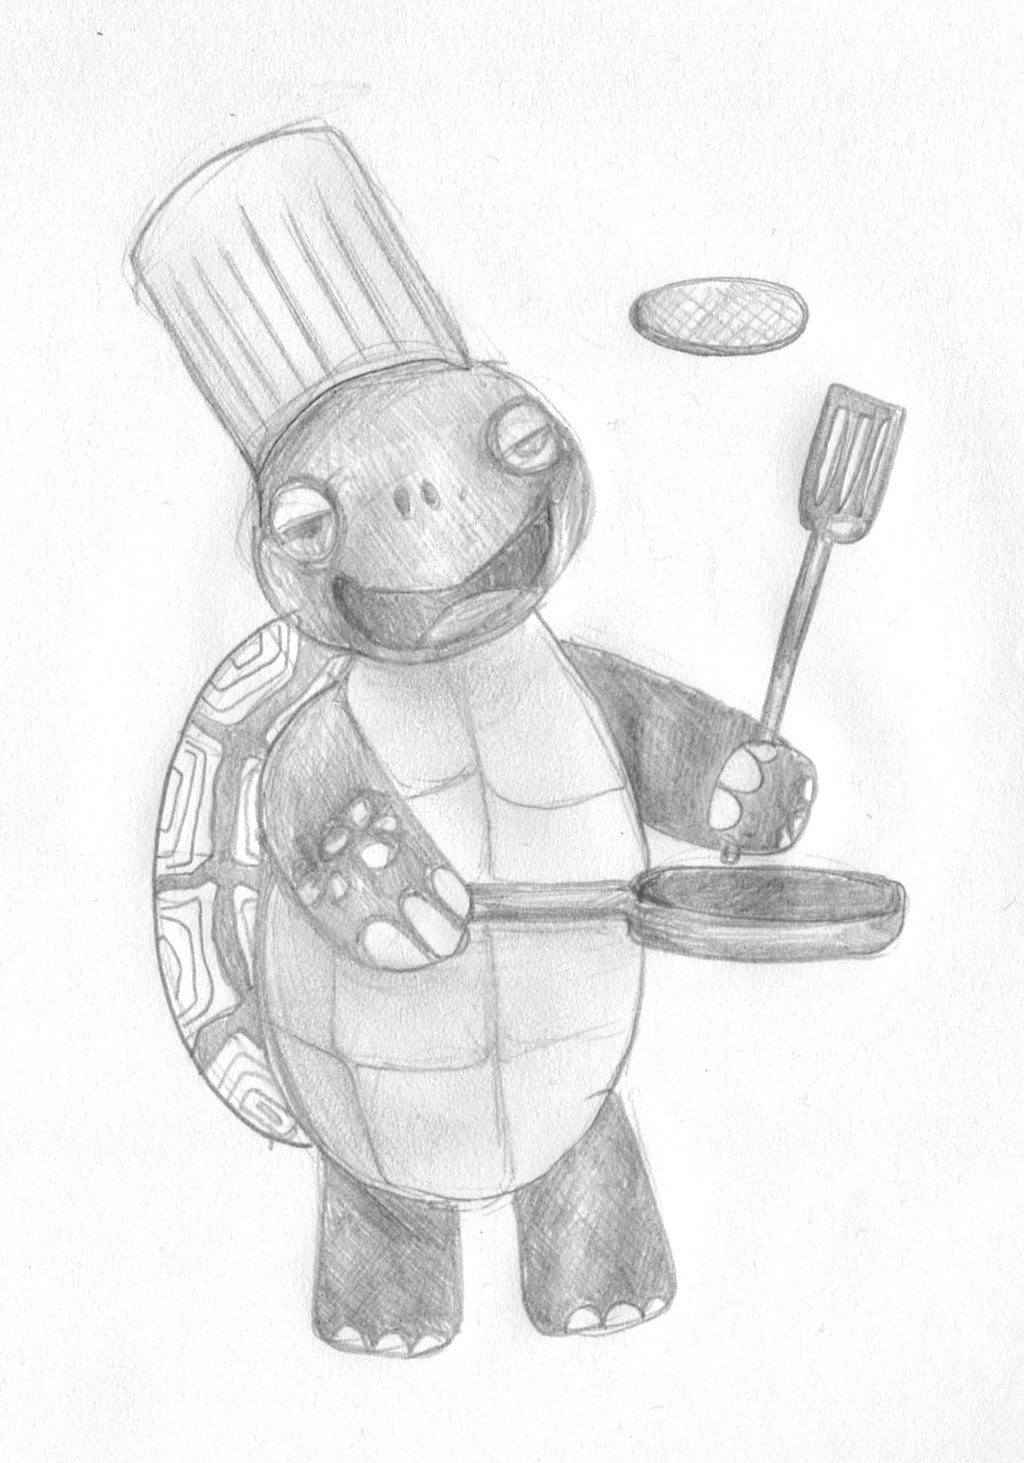 A very special turtle cooking pancakes while wearing a chef hat